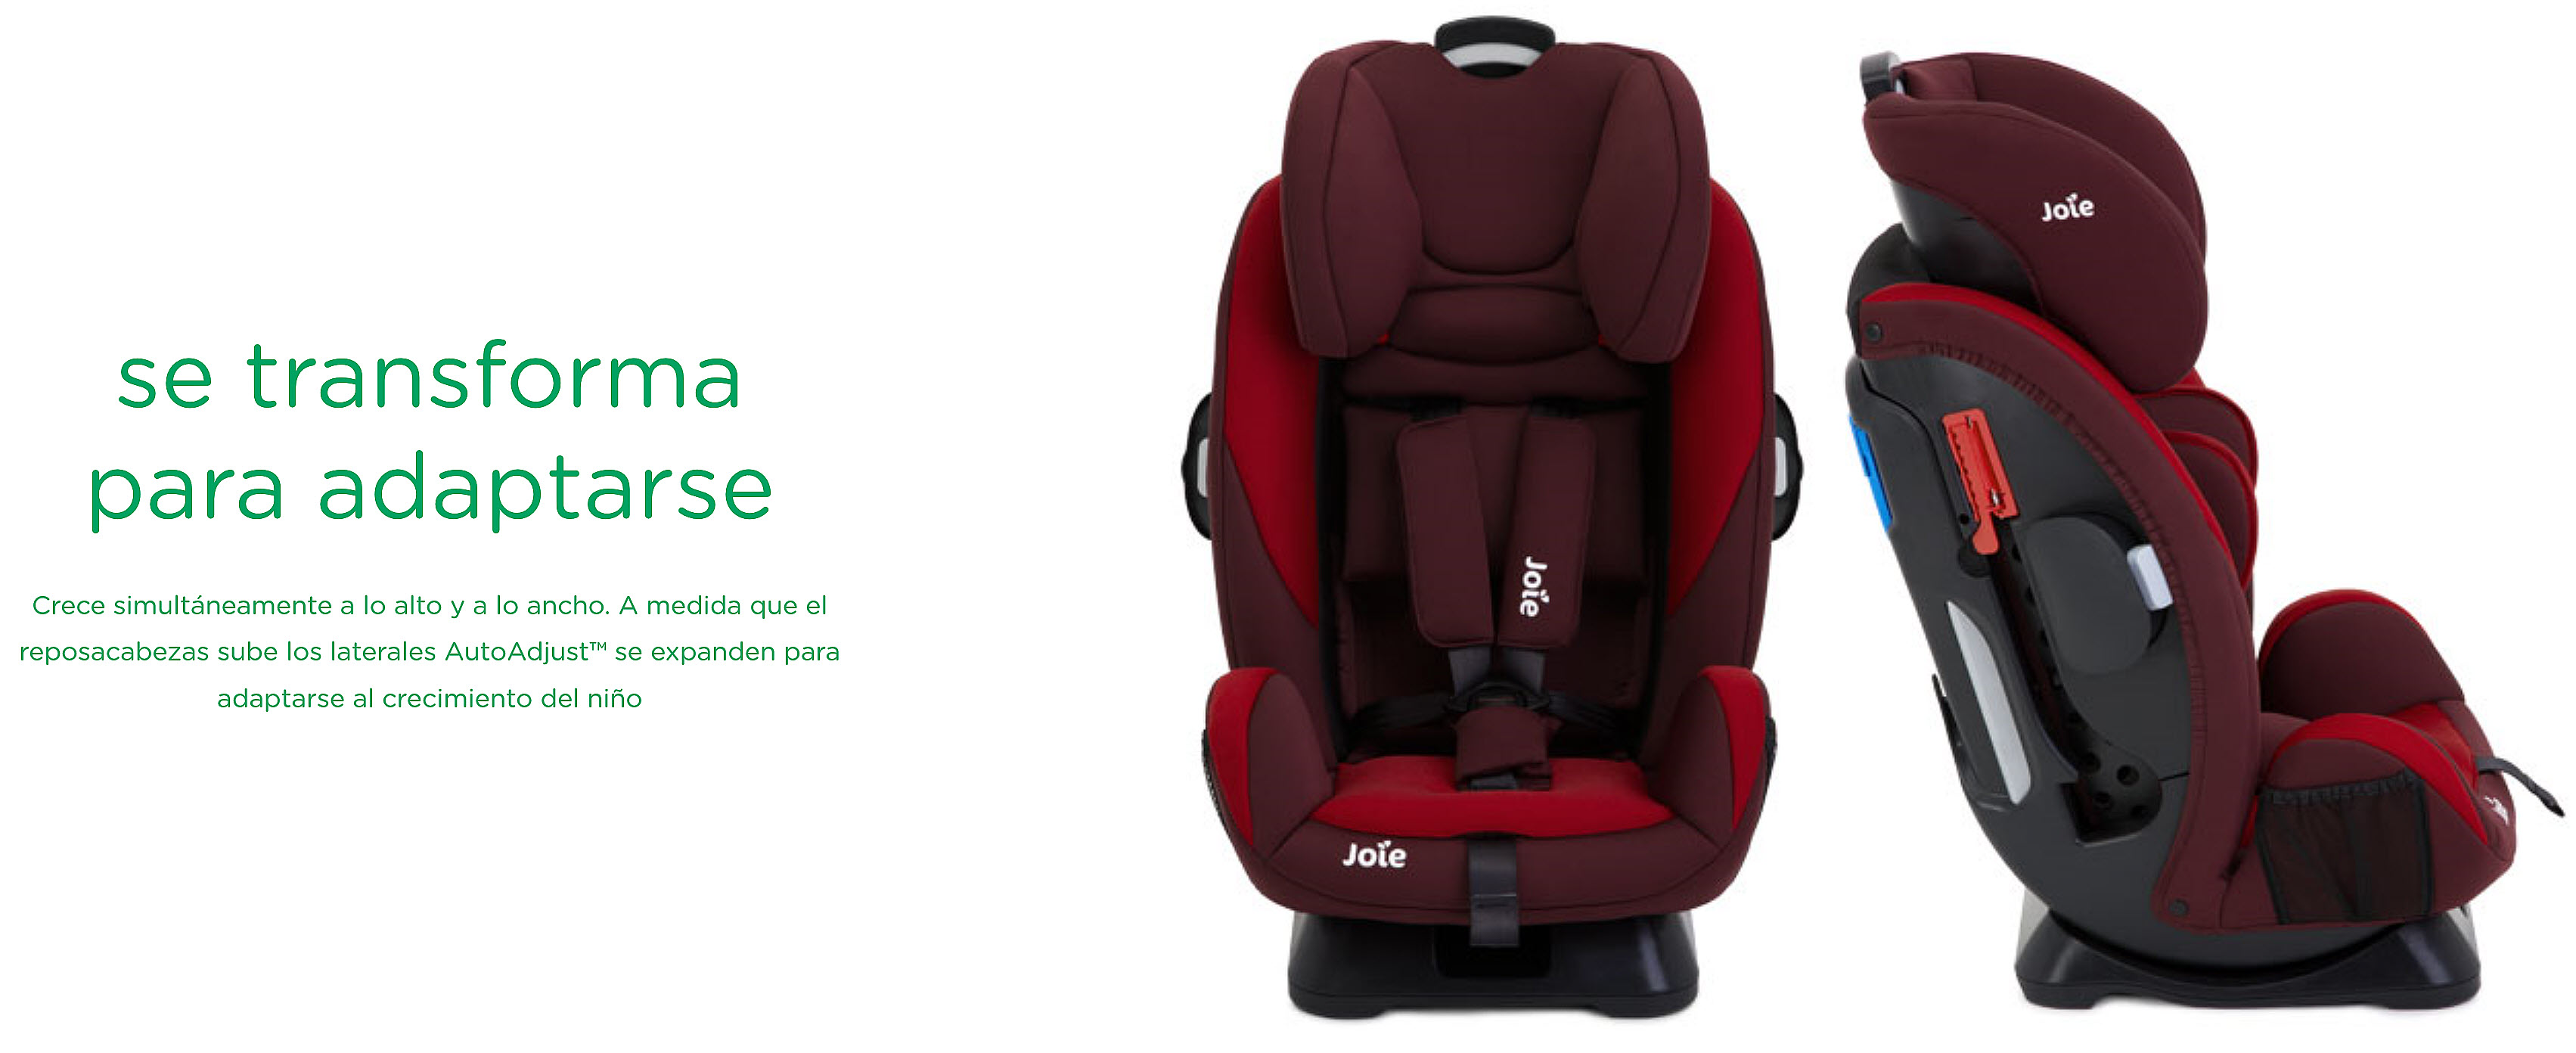 SILLA AUTO JOIE EVERY STAGE, SE TRANSFORMA Y SE ADAPTA